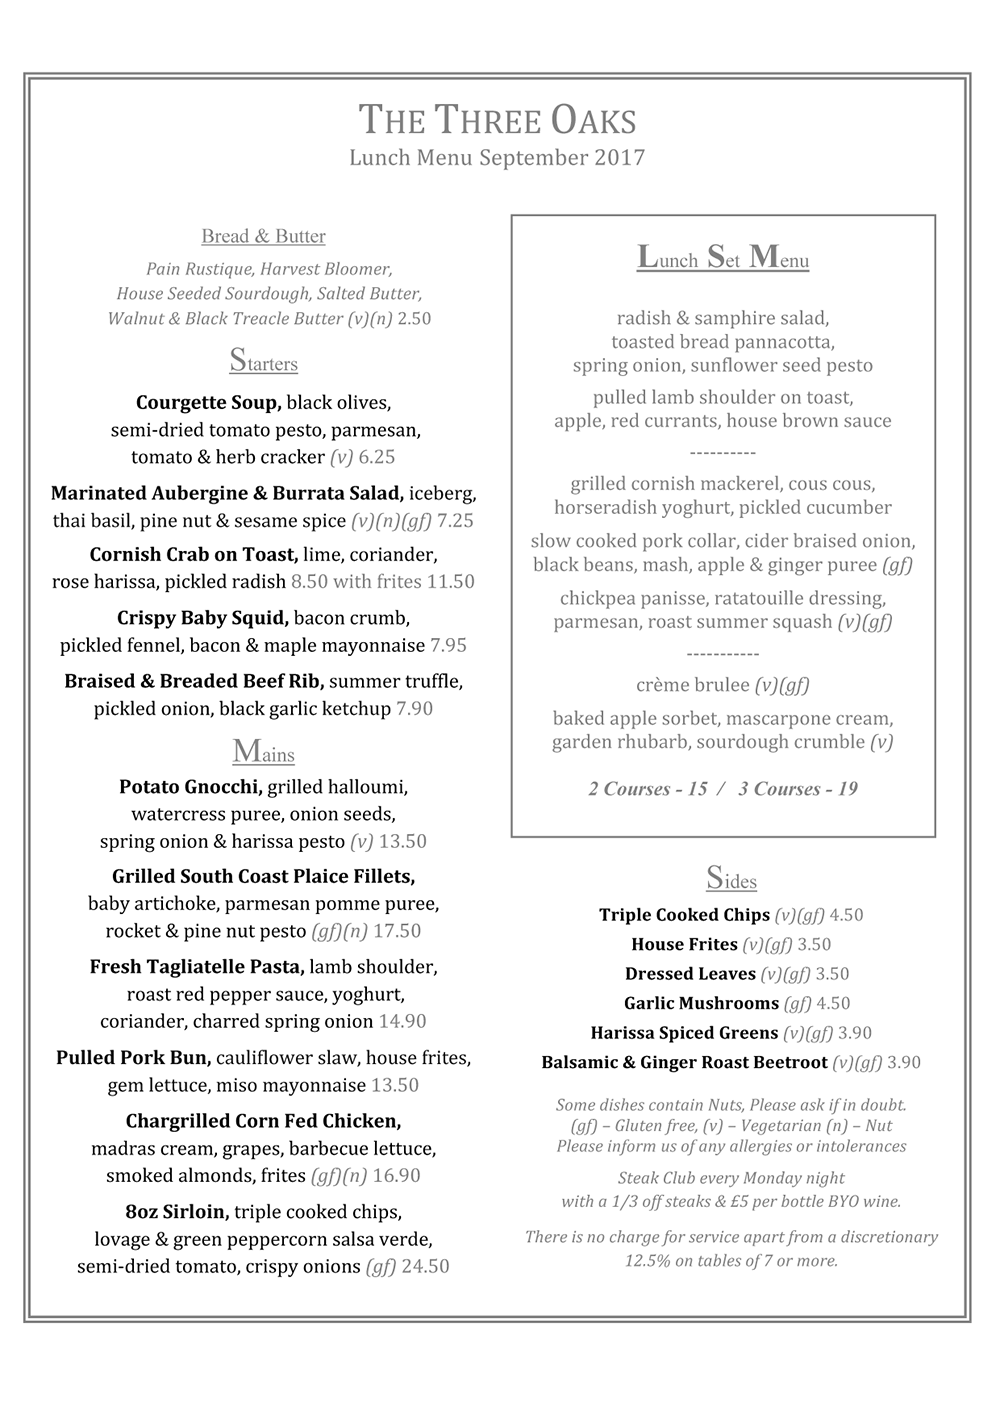 Sept 2017 Lunch Menu